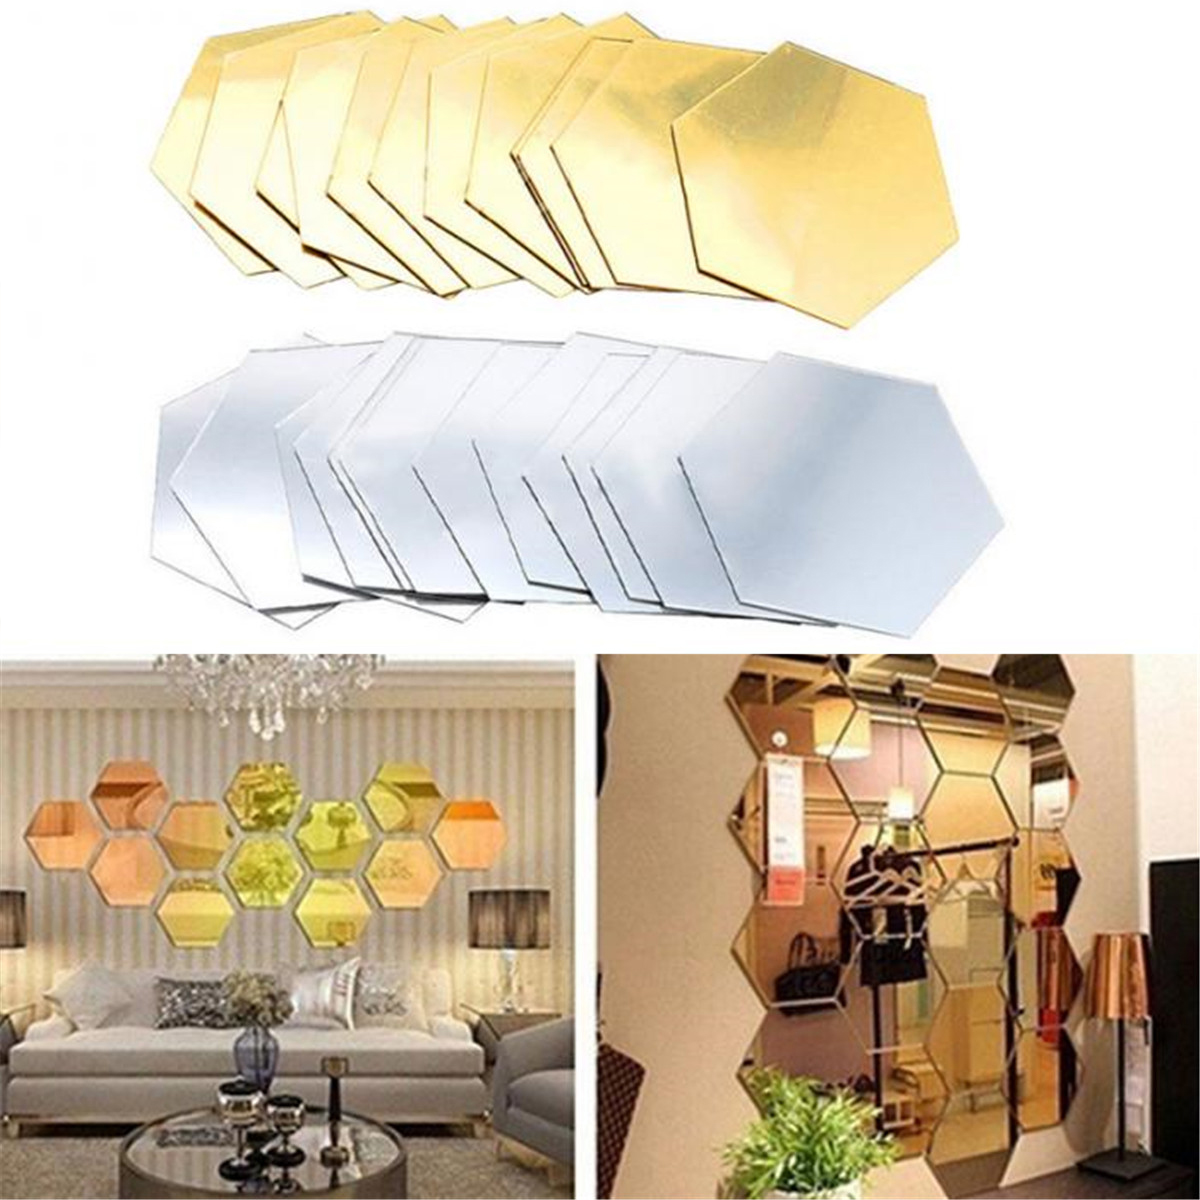 12Pcs 3D Mirror Hexagon Decorations DIY Removable Living-Room Wall Sticker Decal Art Ornaments For Home